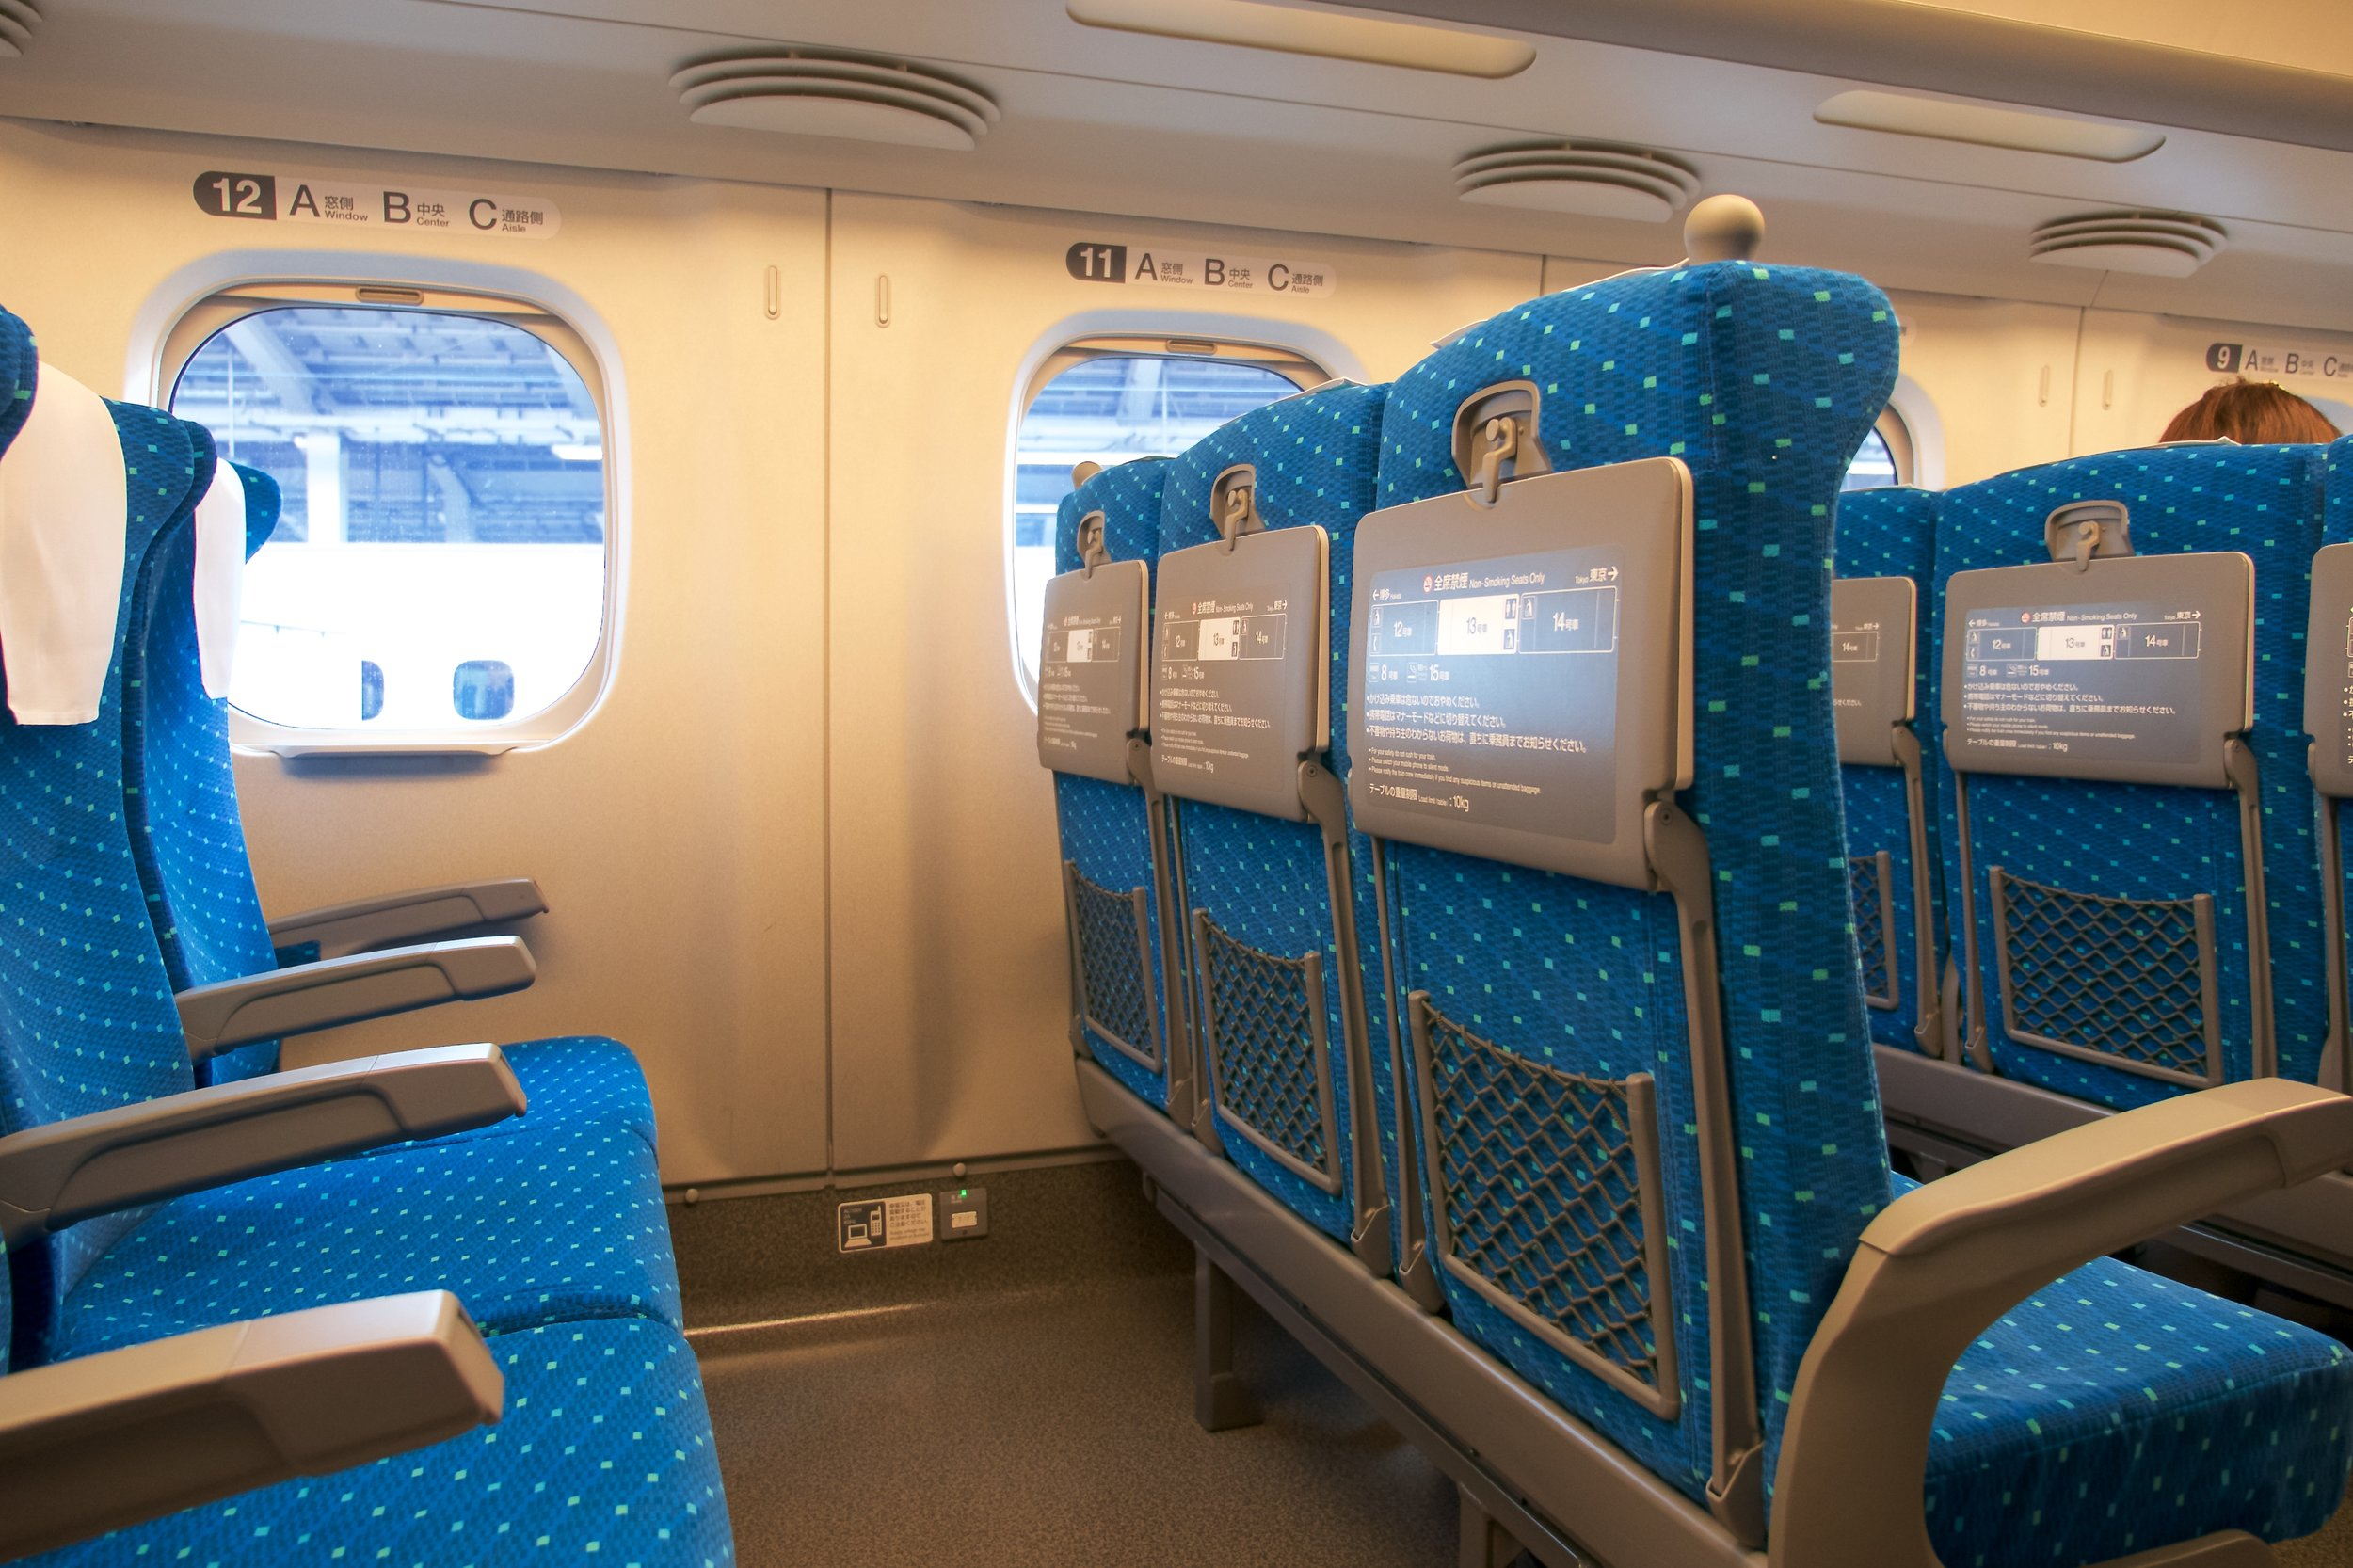 Riding a Shinkansen is a lot like an airplane, but more room. There were only two seats on our side of the aisle.